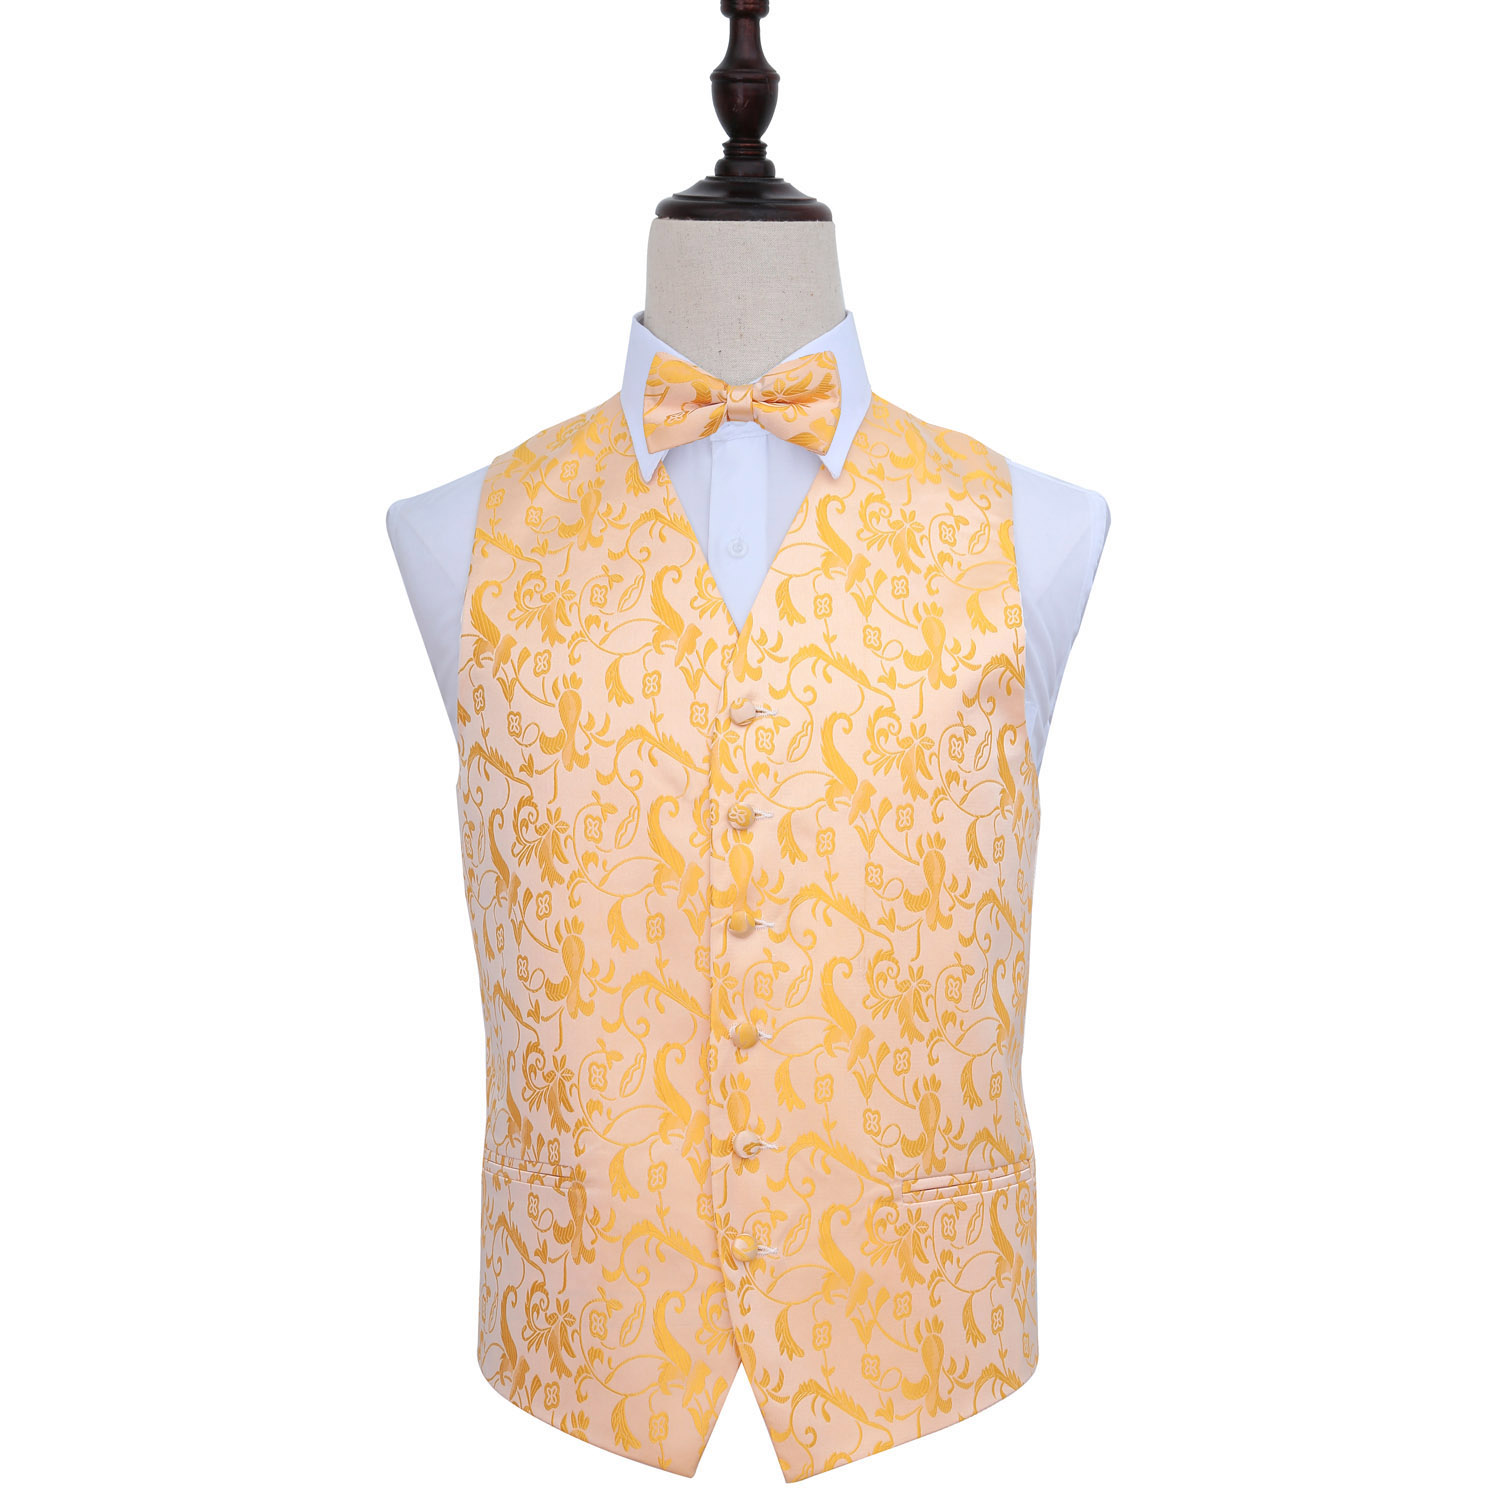 Passion Gold Wedding Waistcoat & Bow Tie Set 36